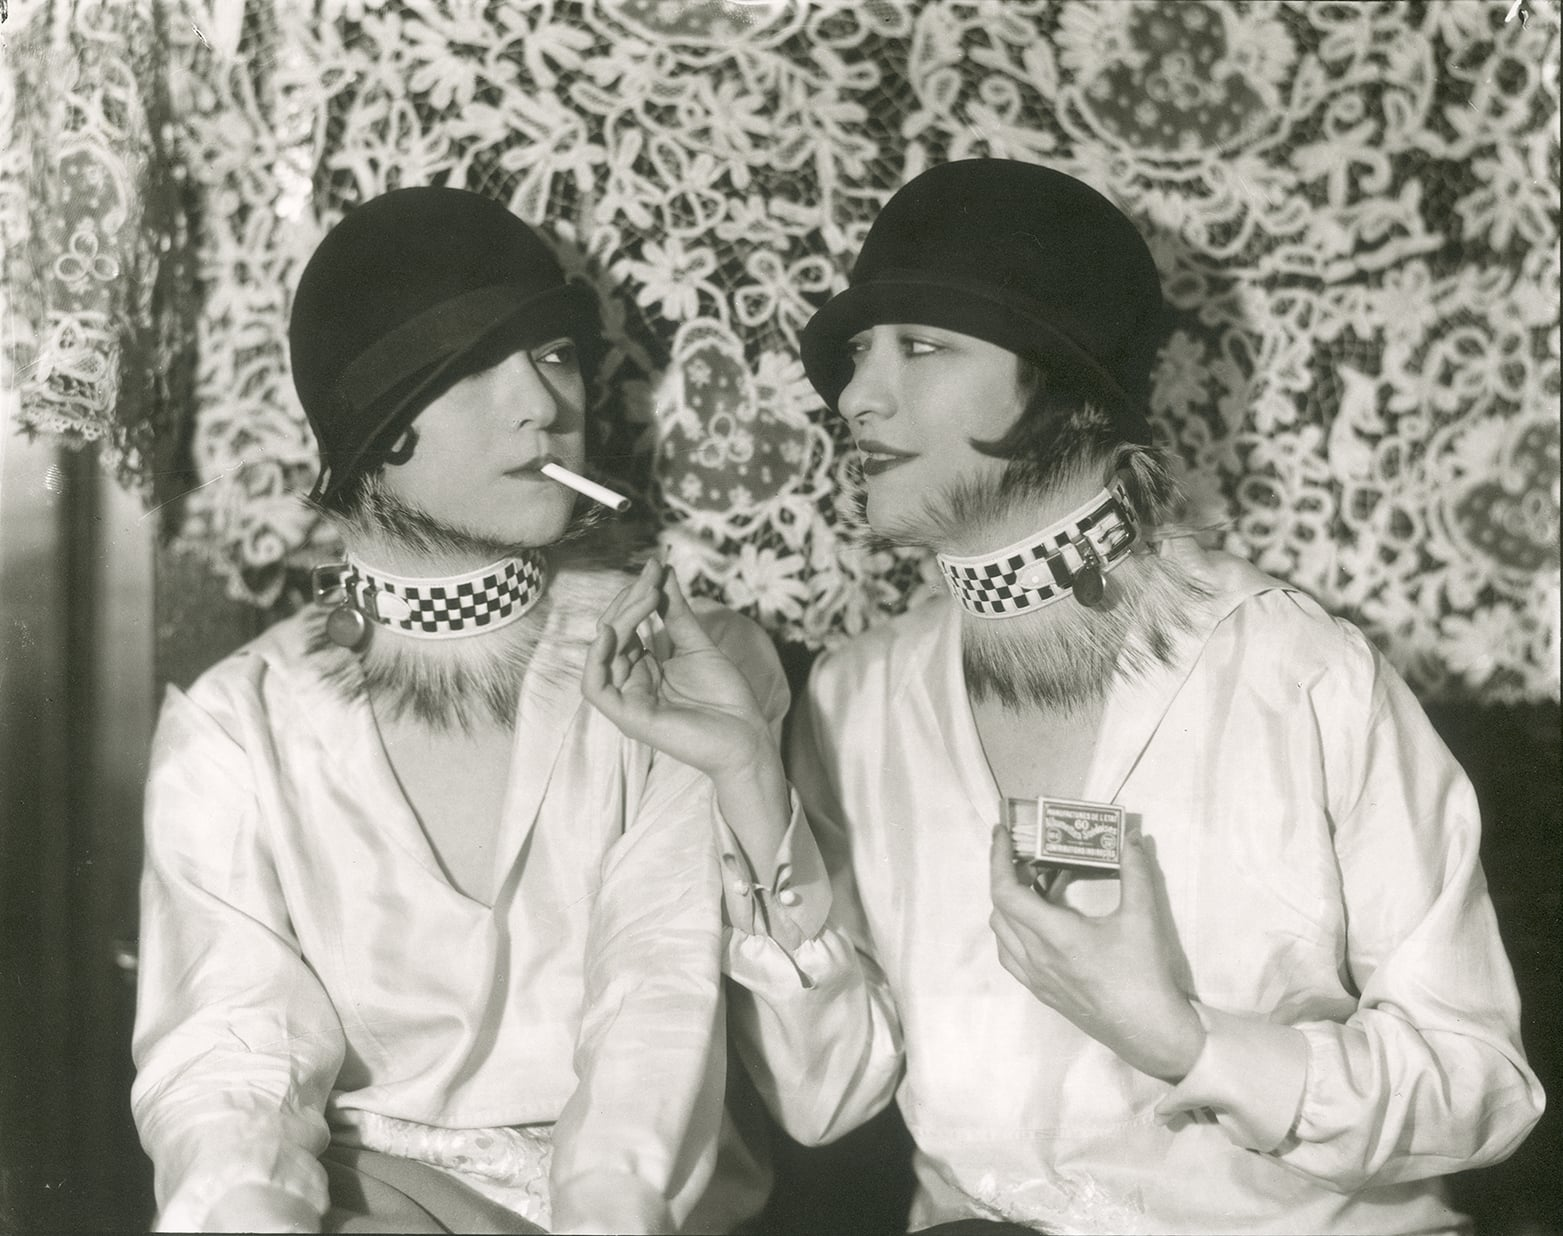 37 Vintage Portrait Photos Of The Dolly Sisters Scandalous Vaudeville Performers From The Jazz